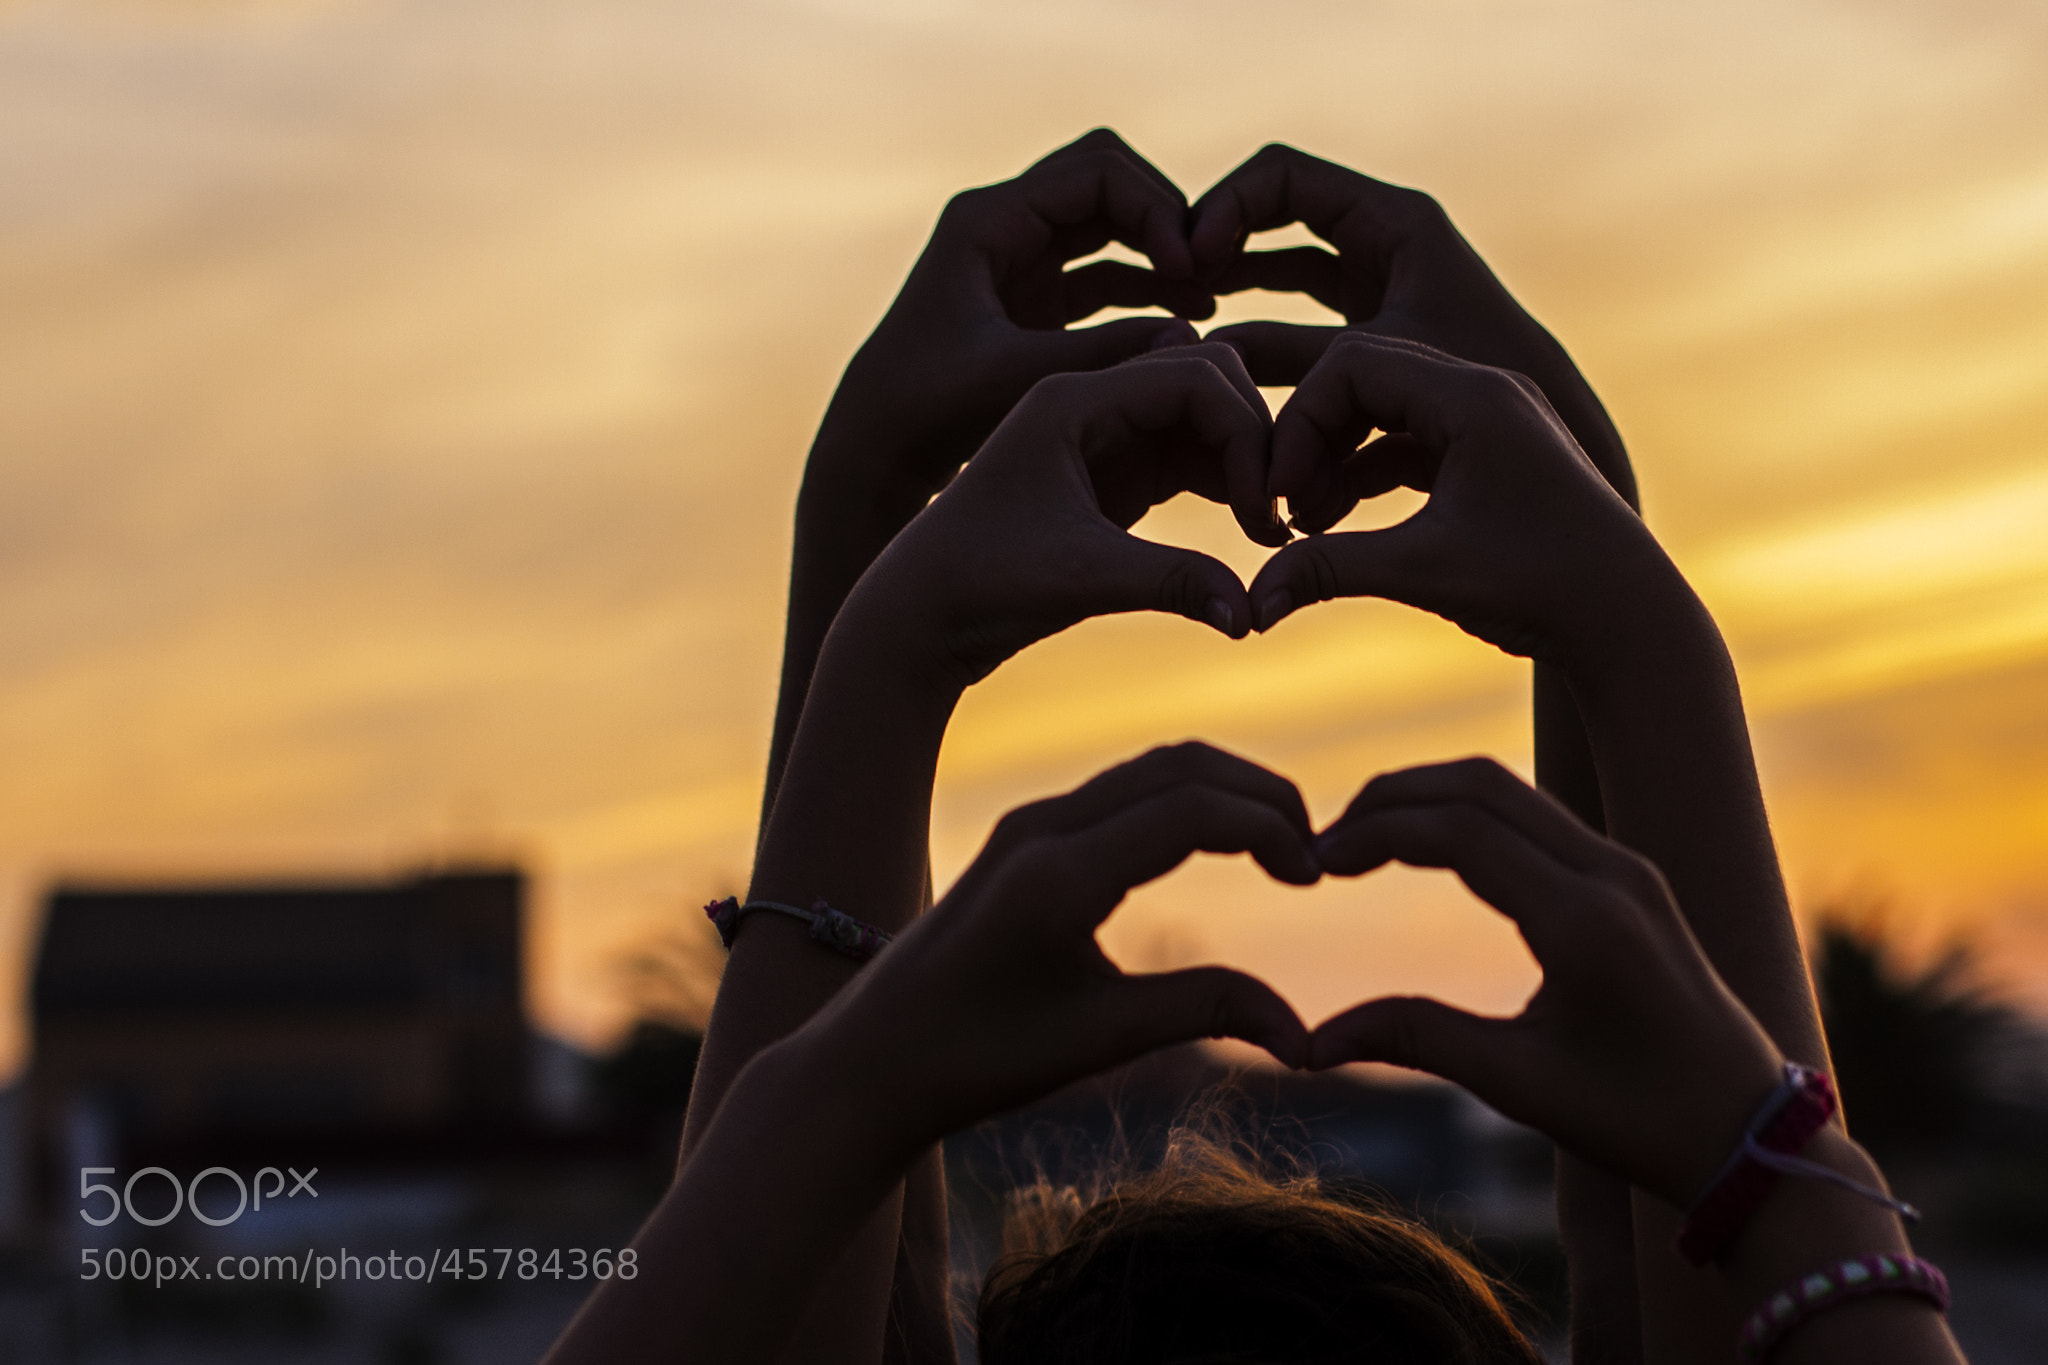 Photograph Love is in the air by Rebeca Moncho on 500px